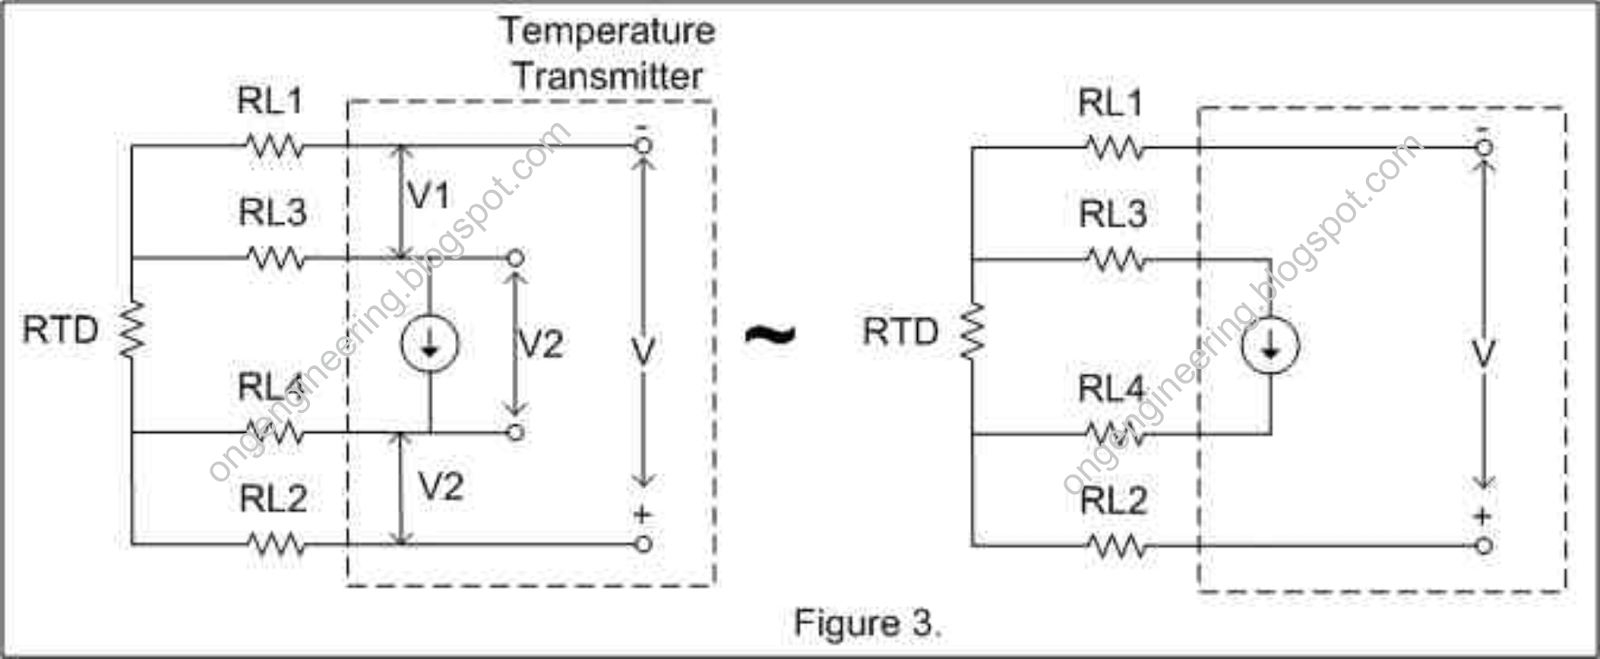 small resolution of for best compensation of wire resistance used by rtd 4 wires are the best choices it subtracts all the wire resistance from the voltage drop equation see